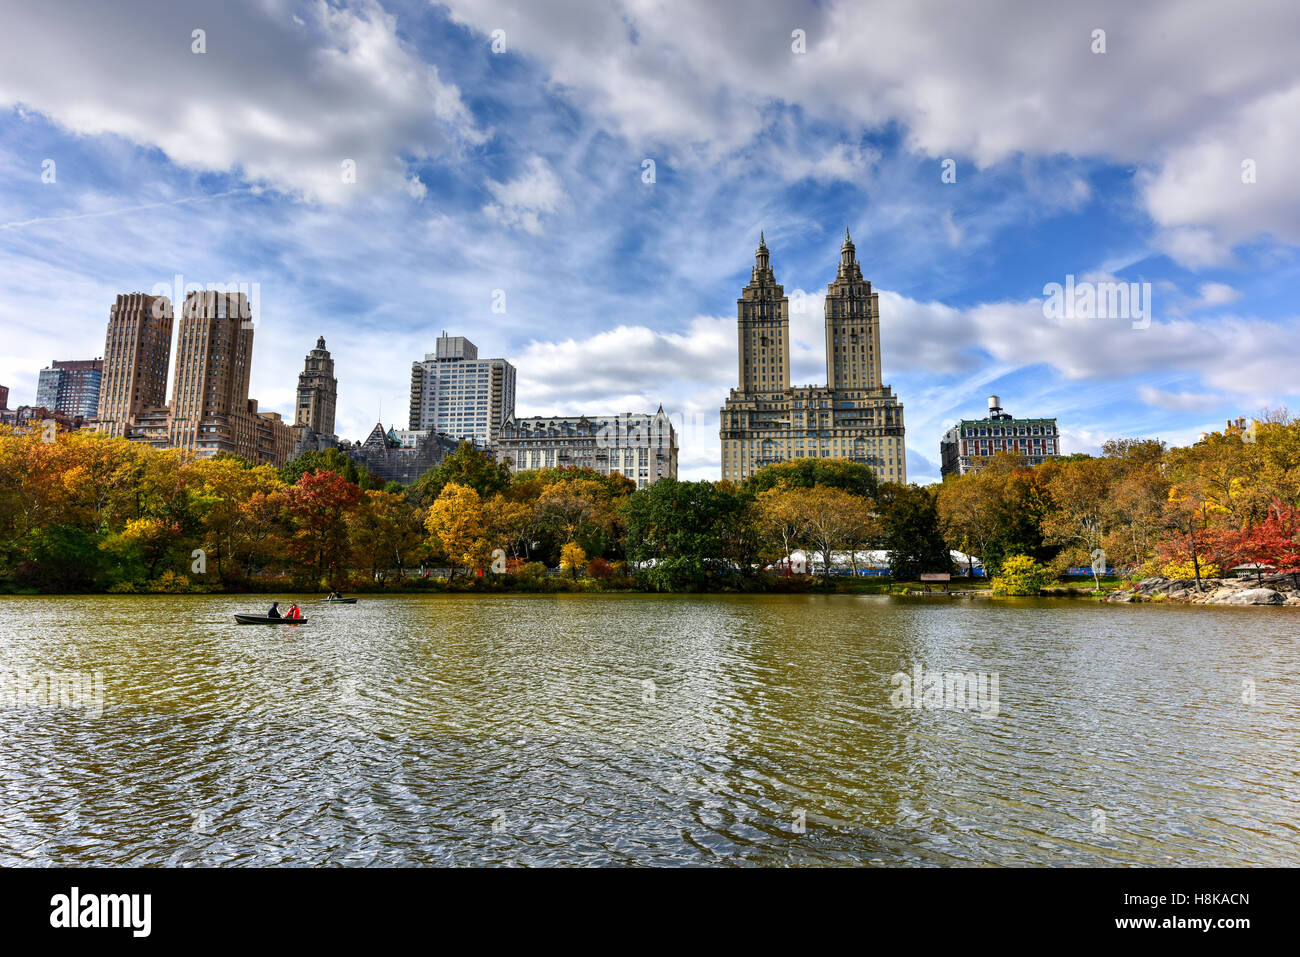 View of Central Park over the Lake in New York City in the Autumn. - Stock Image